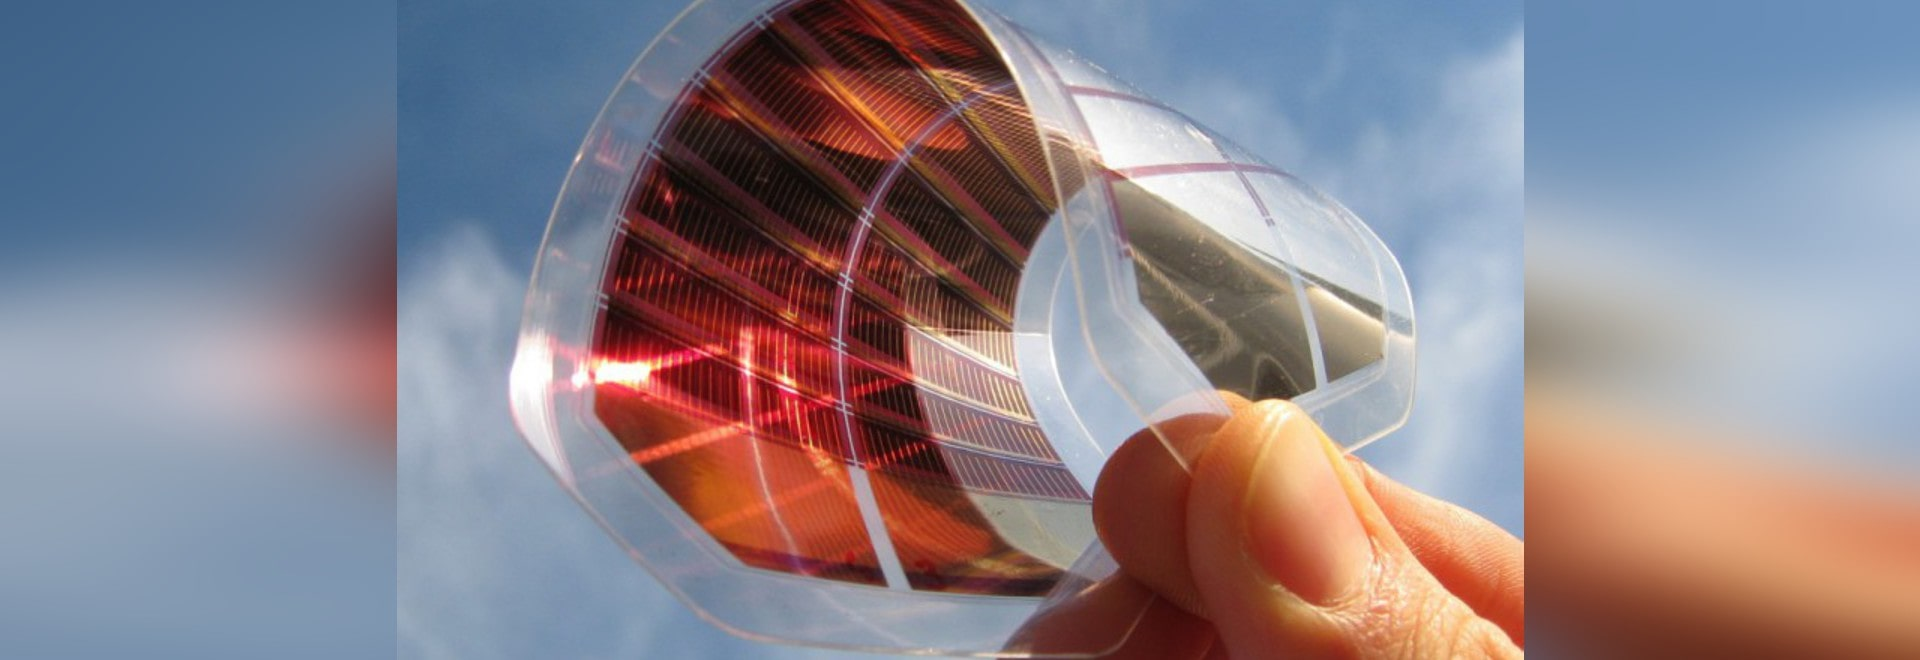 INEXPENSIVE SOLAR CELLS COULD PROVIDE POWER TO POOR COMMUNITIES